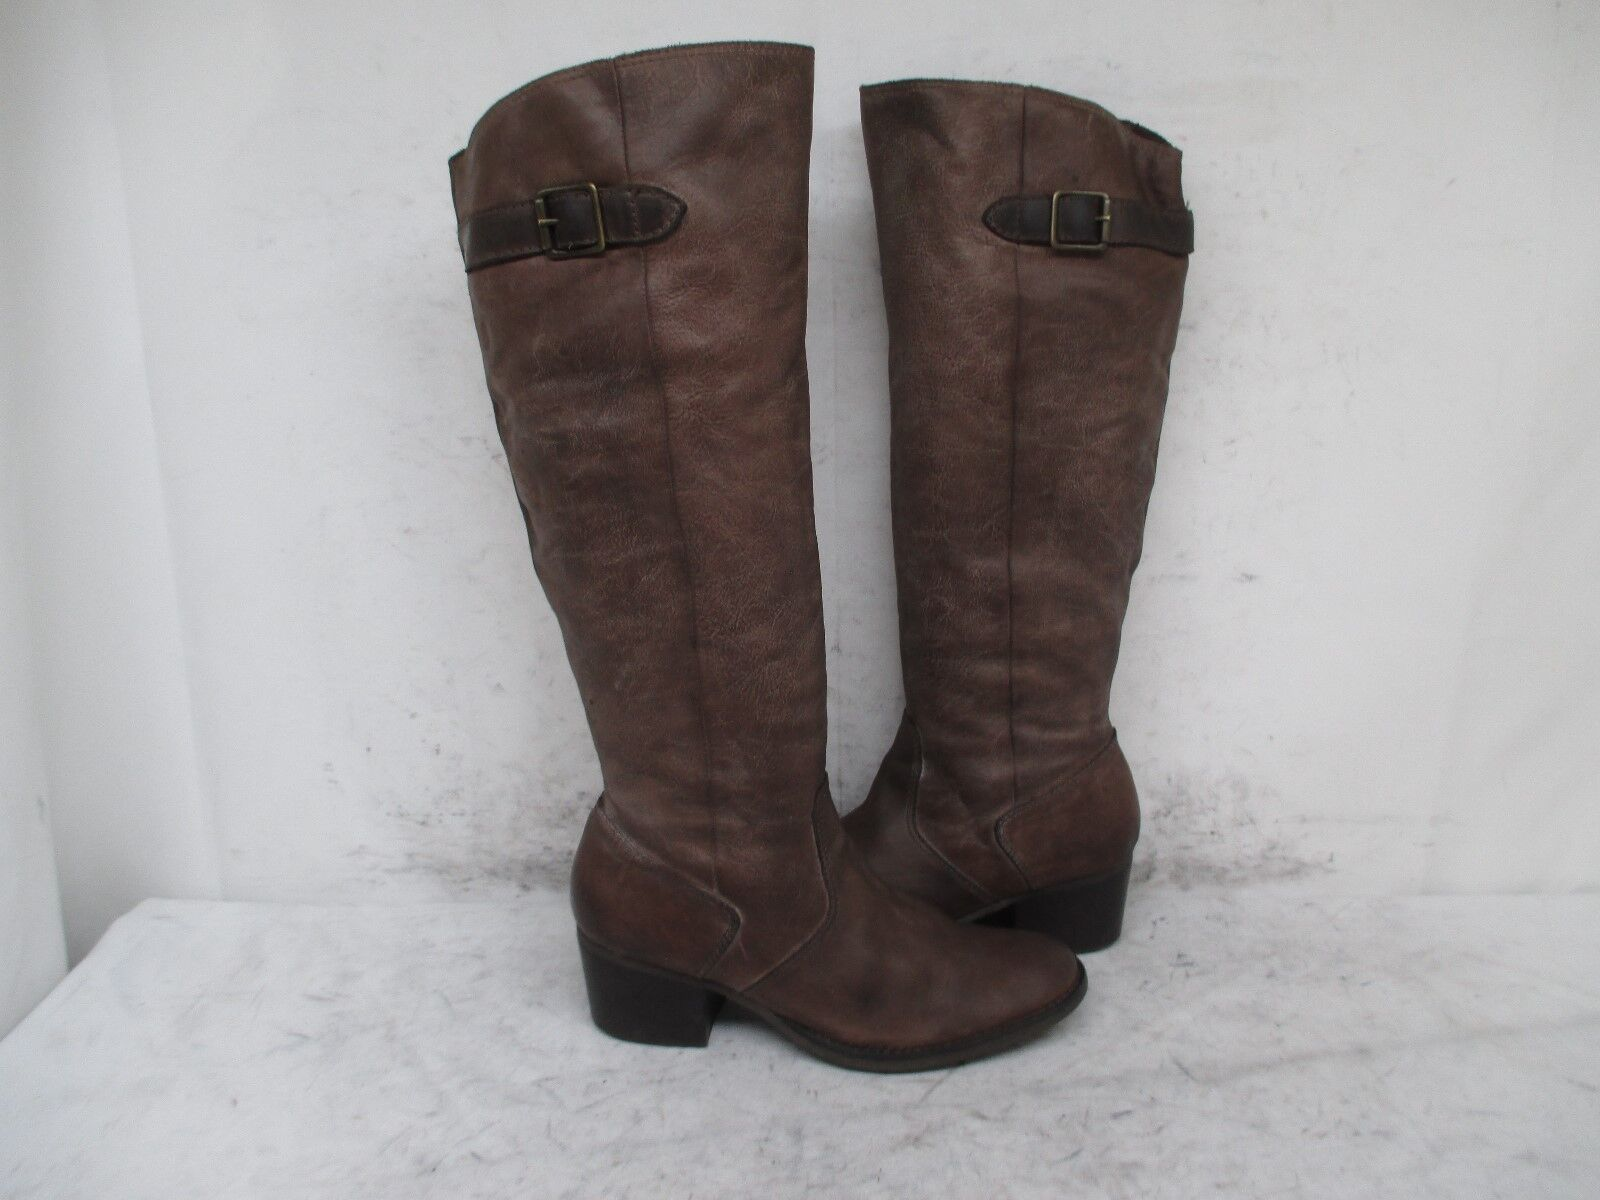 Matisse Tundra High Stone Brown Leather Knee High Tundra Boots Size 7 M 33c61d